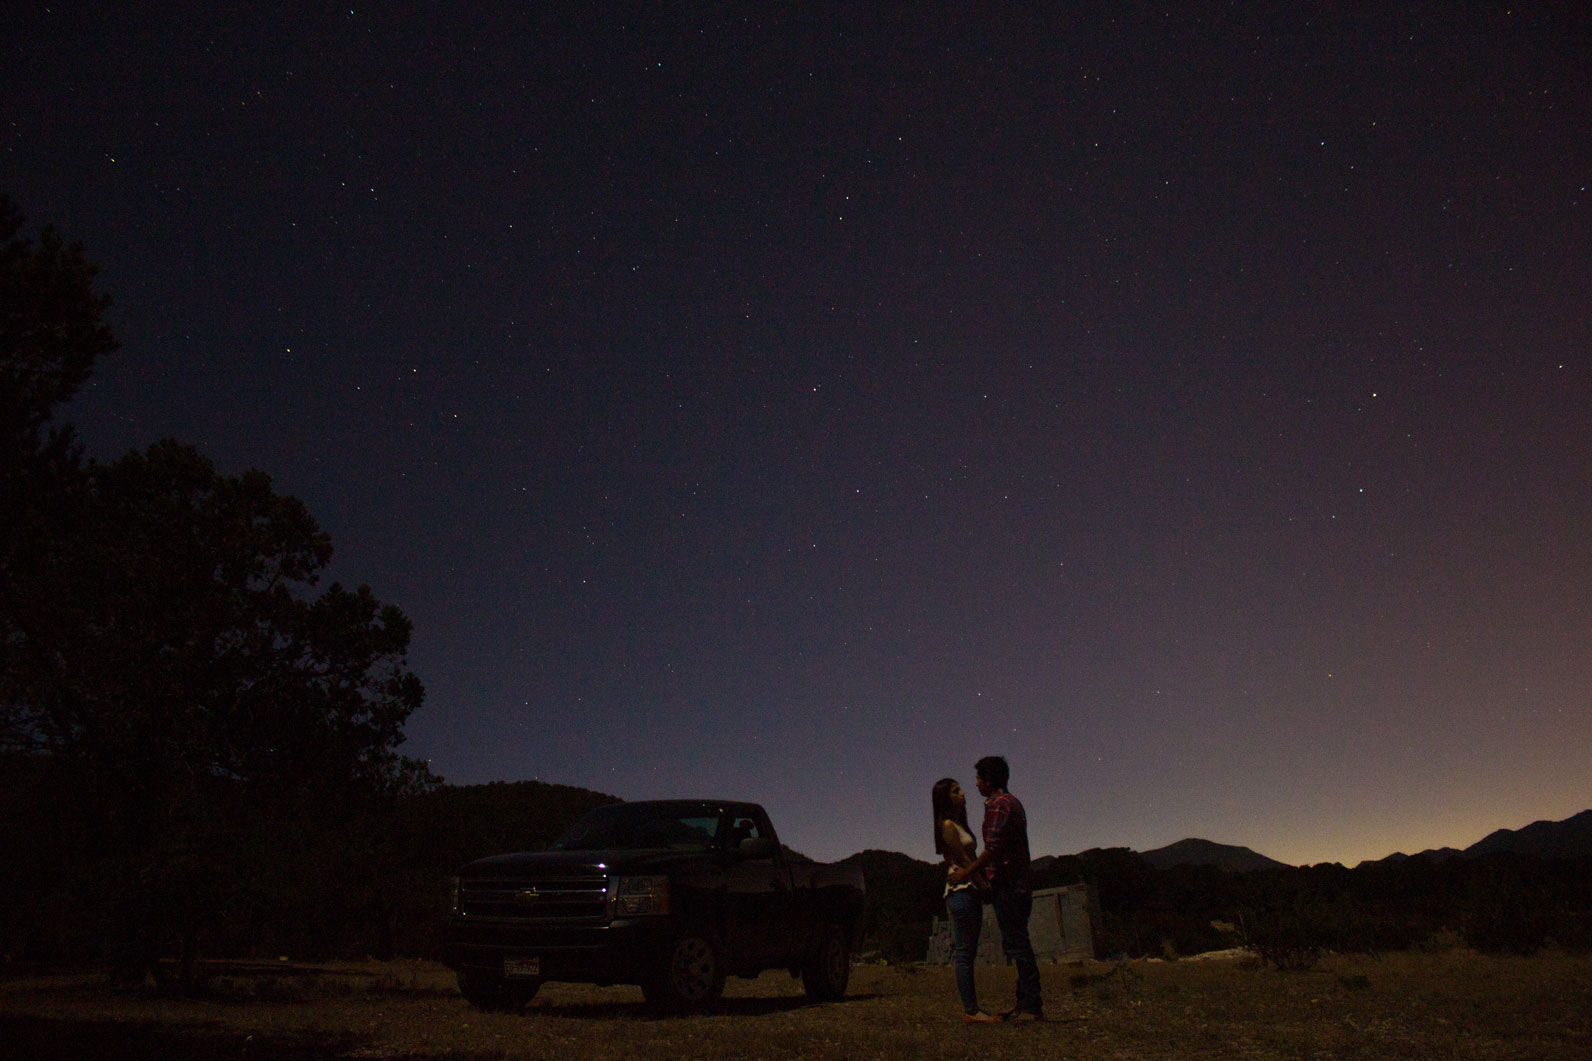 Photograph Love under the stars by Adan Rodriguez on 500px